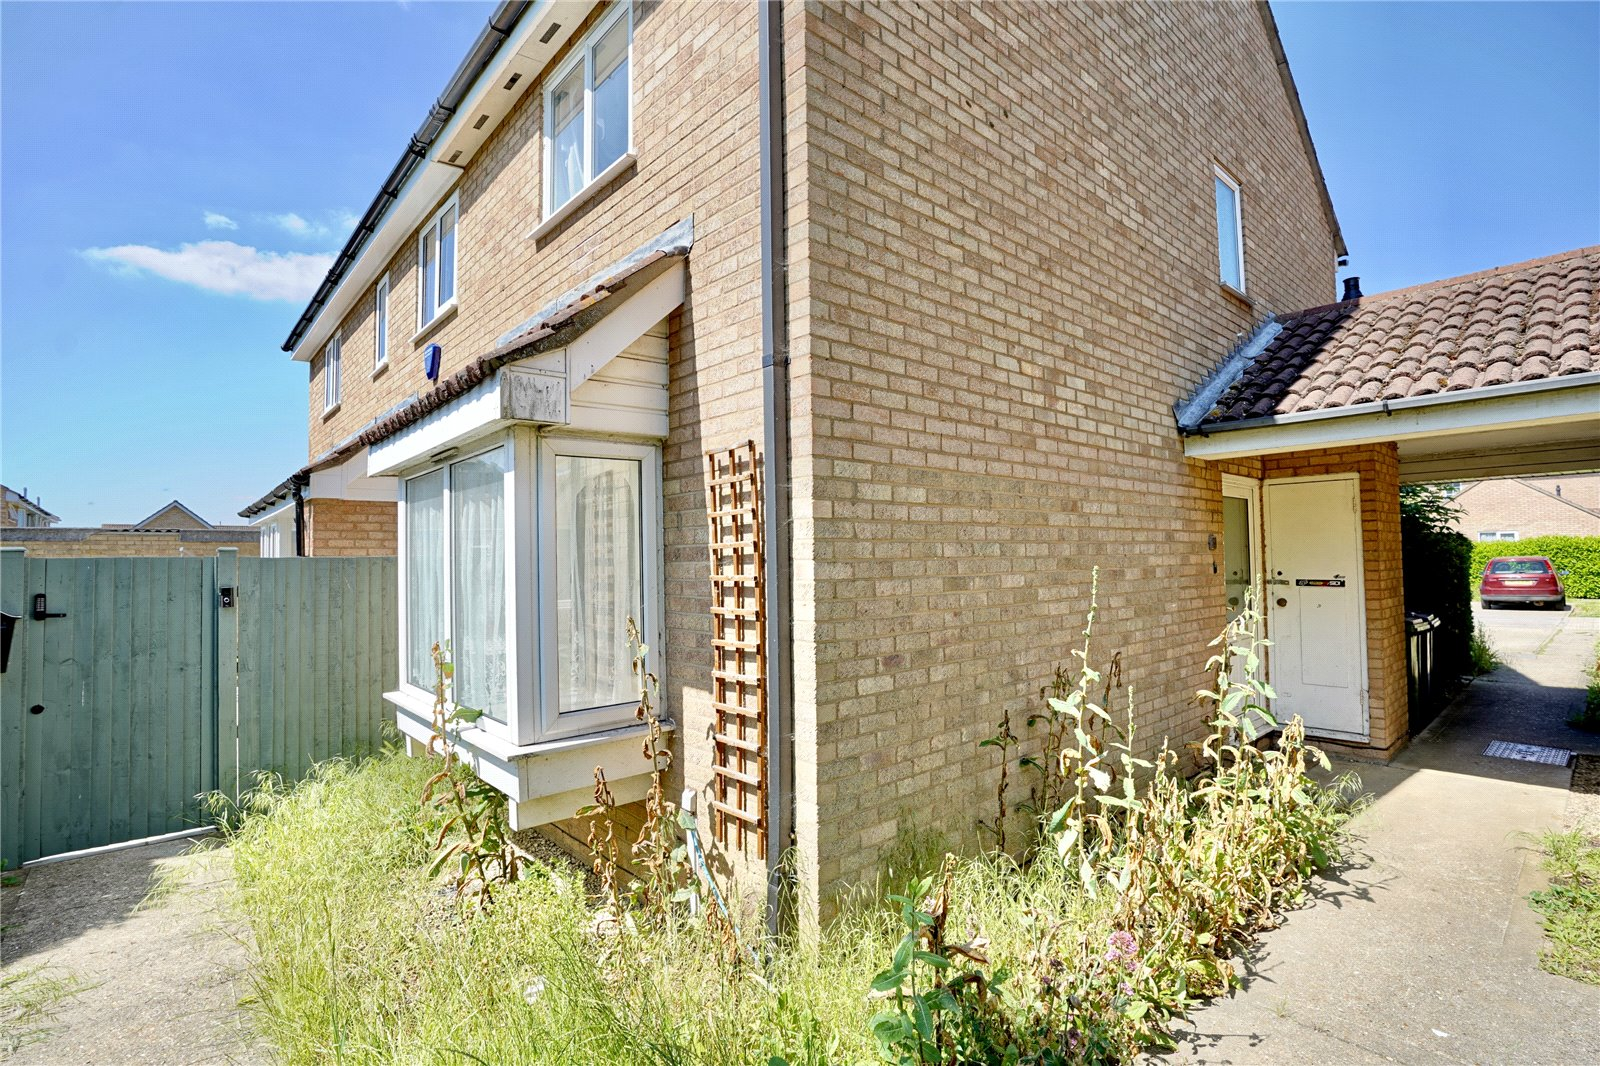 2 bed house for sale in Roe Green, Eaton Socon, PE19